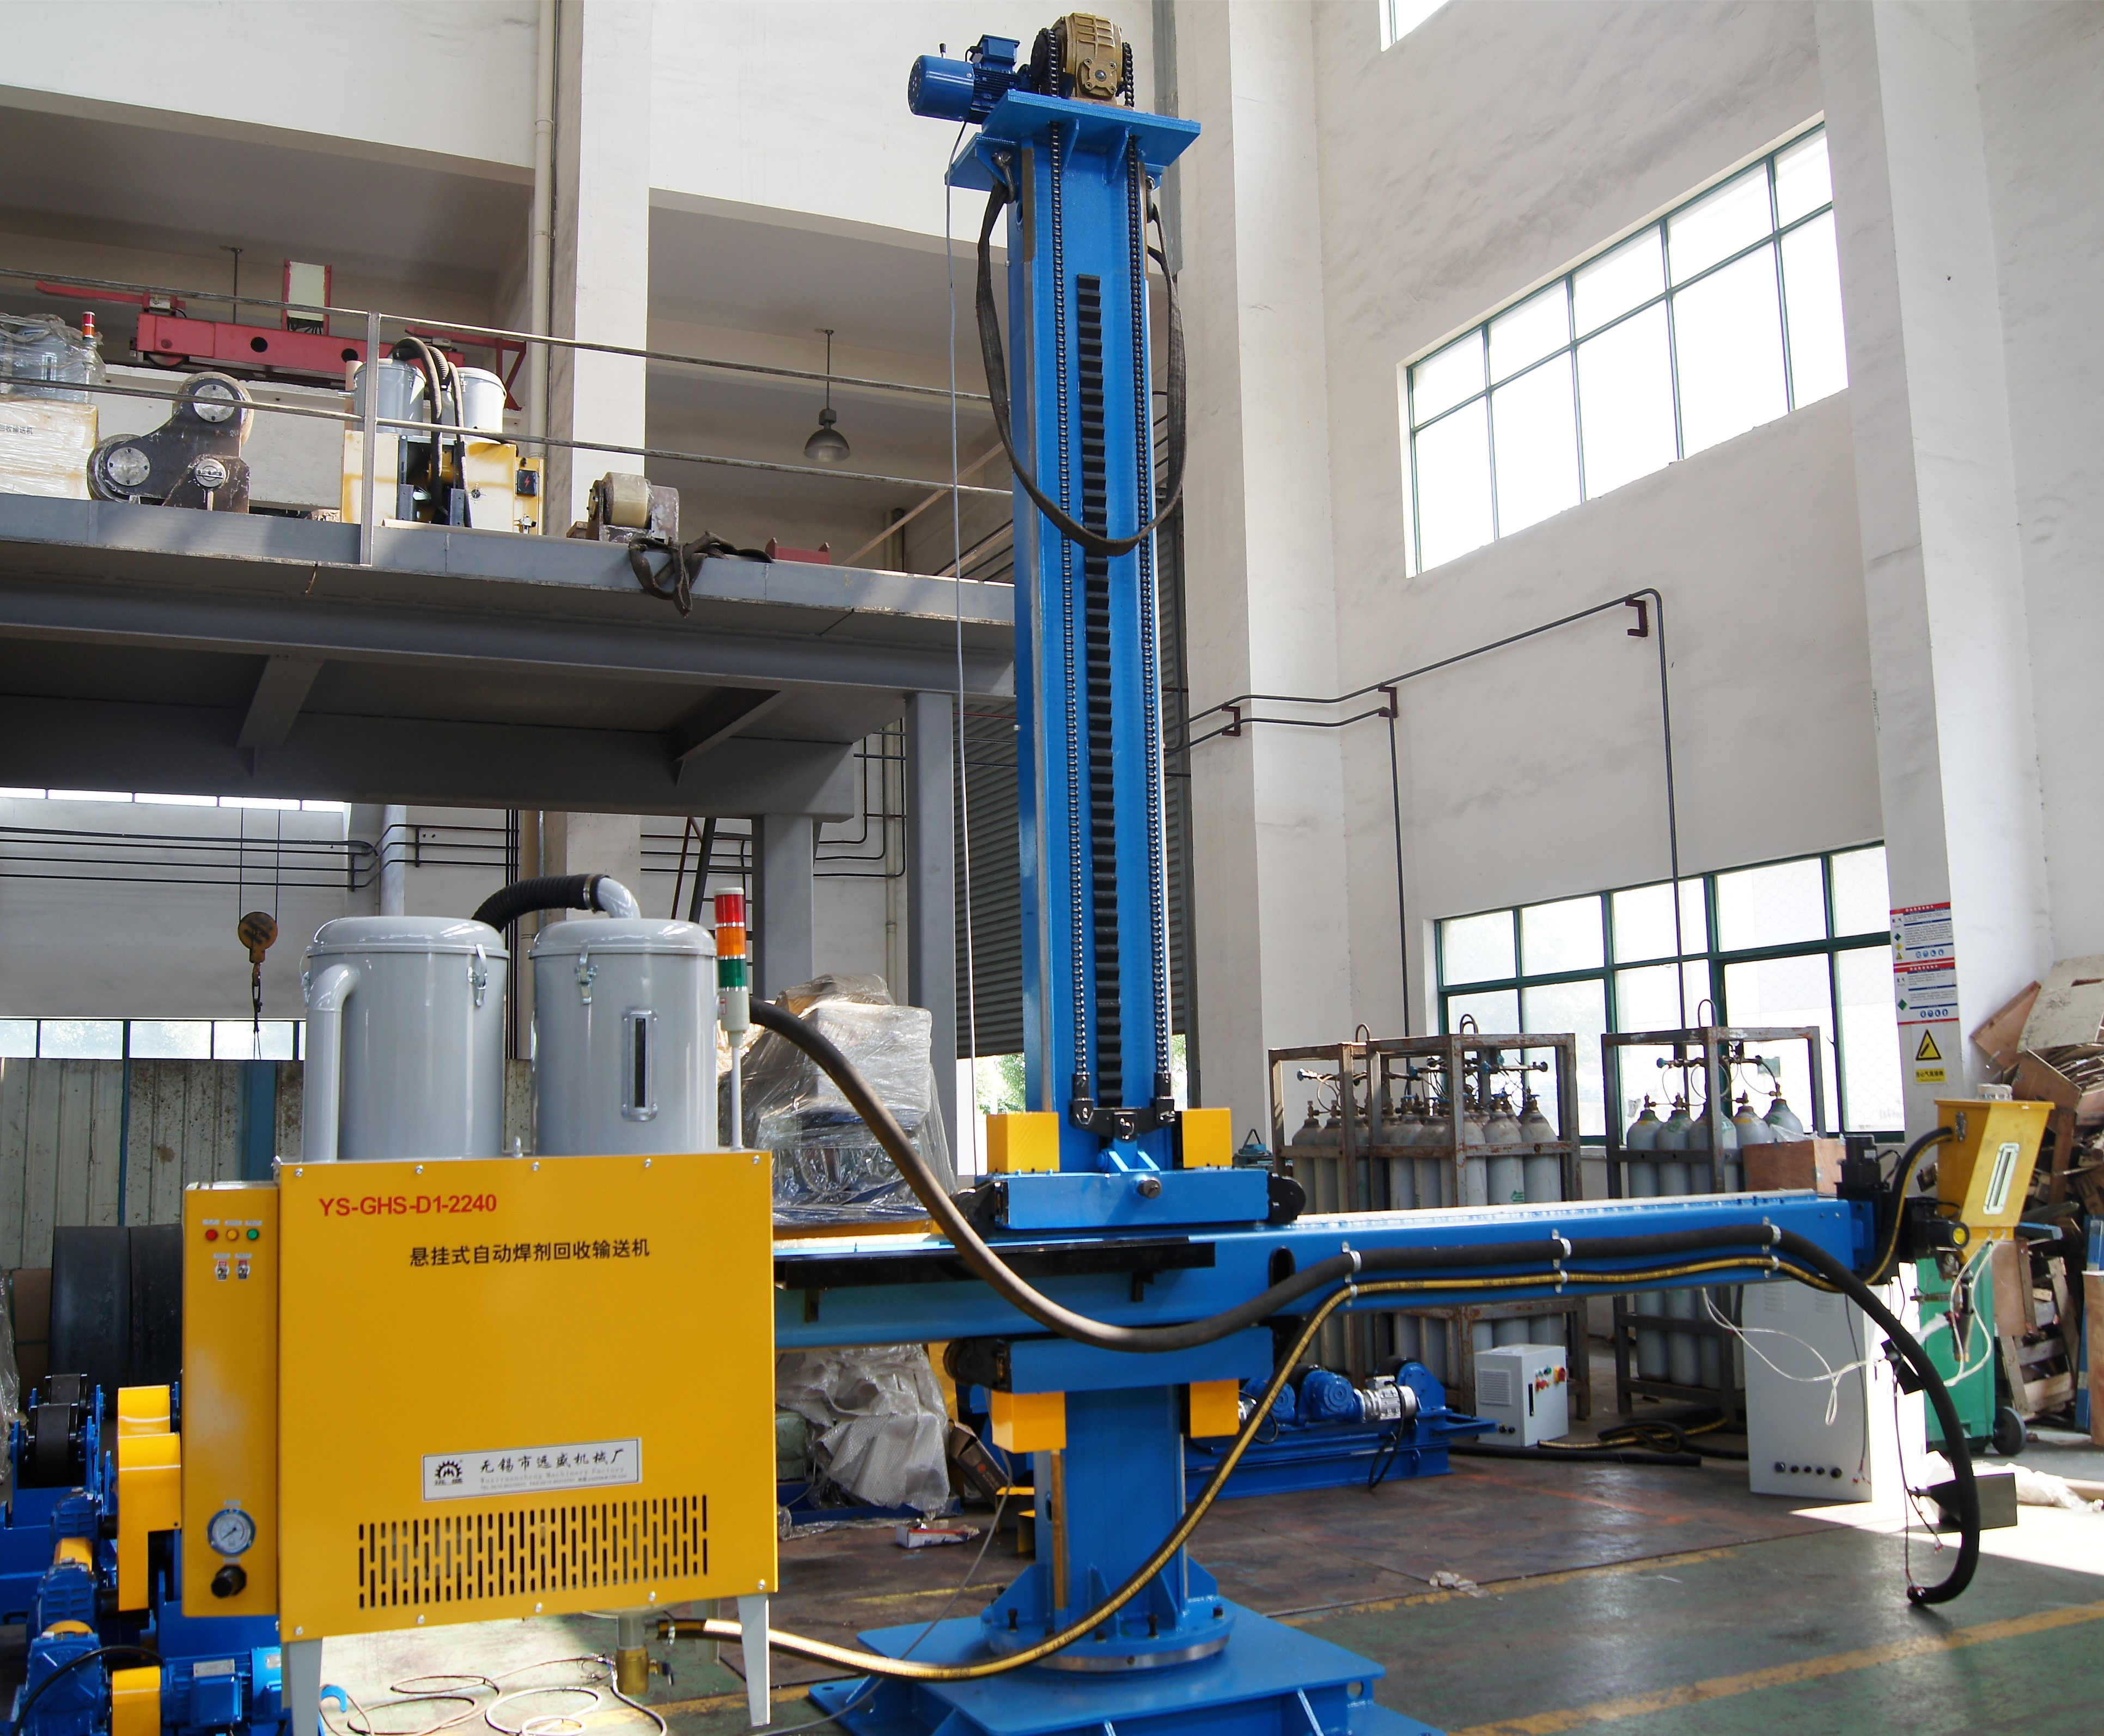 Column Boom Welding Machine Pipe Welding Manipulator - Buy Welding  Column,Column And Boom Manipulator,Pipe Welding Manipulator Product on  Alibaba com